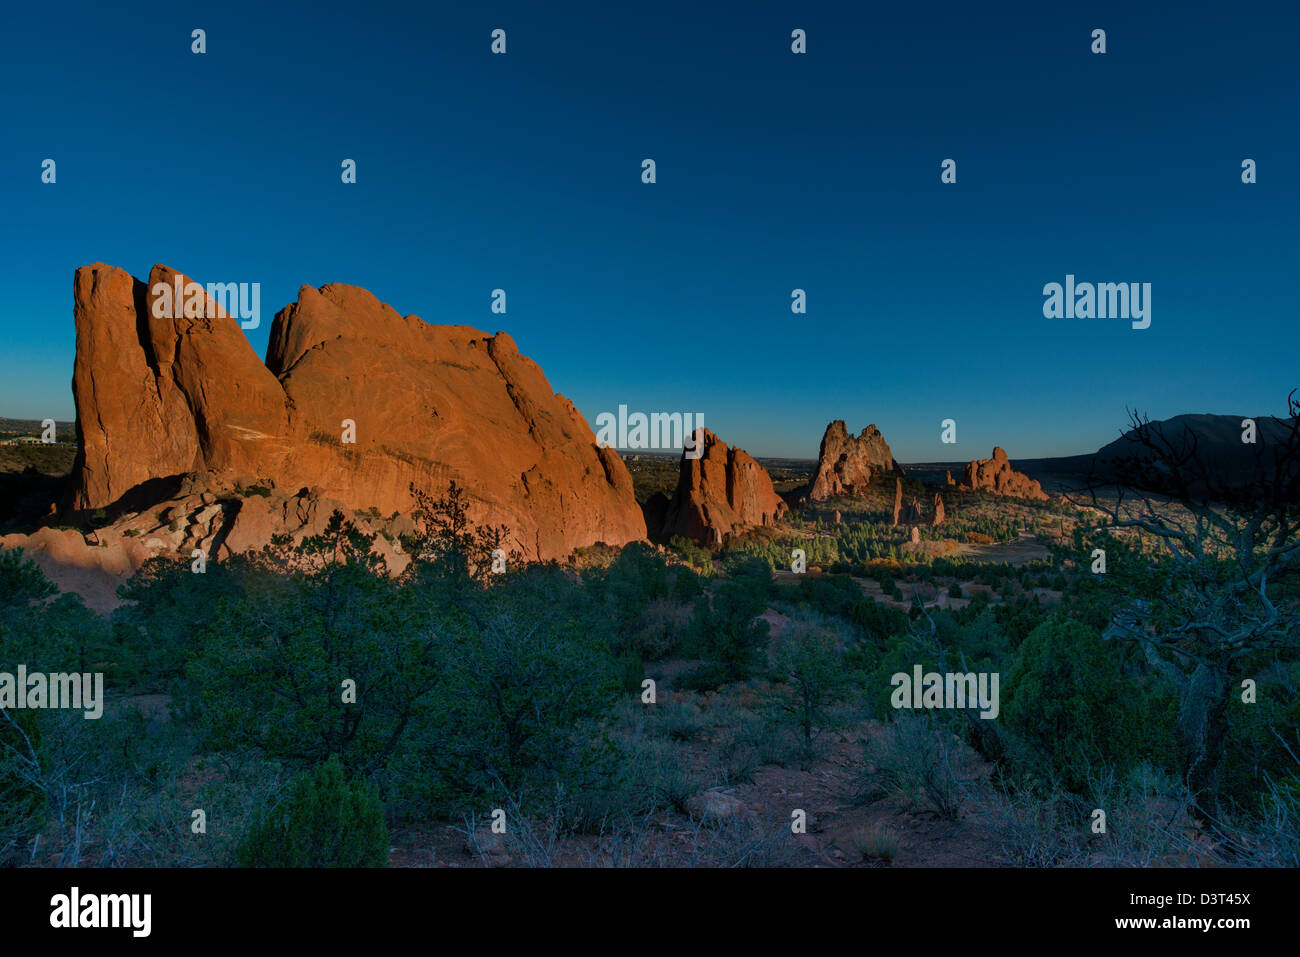 Sunset over Garden of the Gods in Colorado, USA - Stock Image